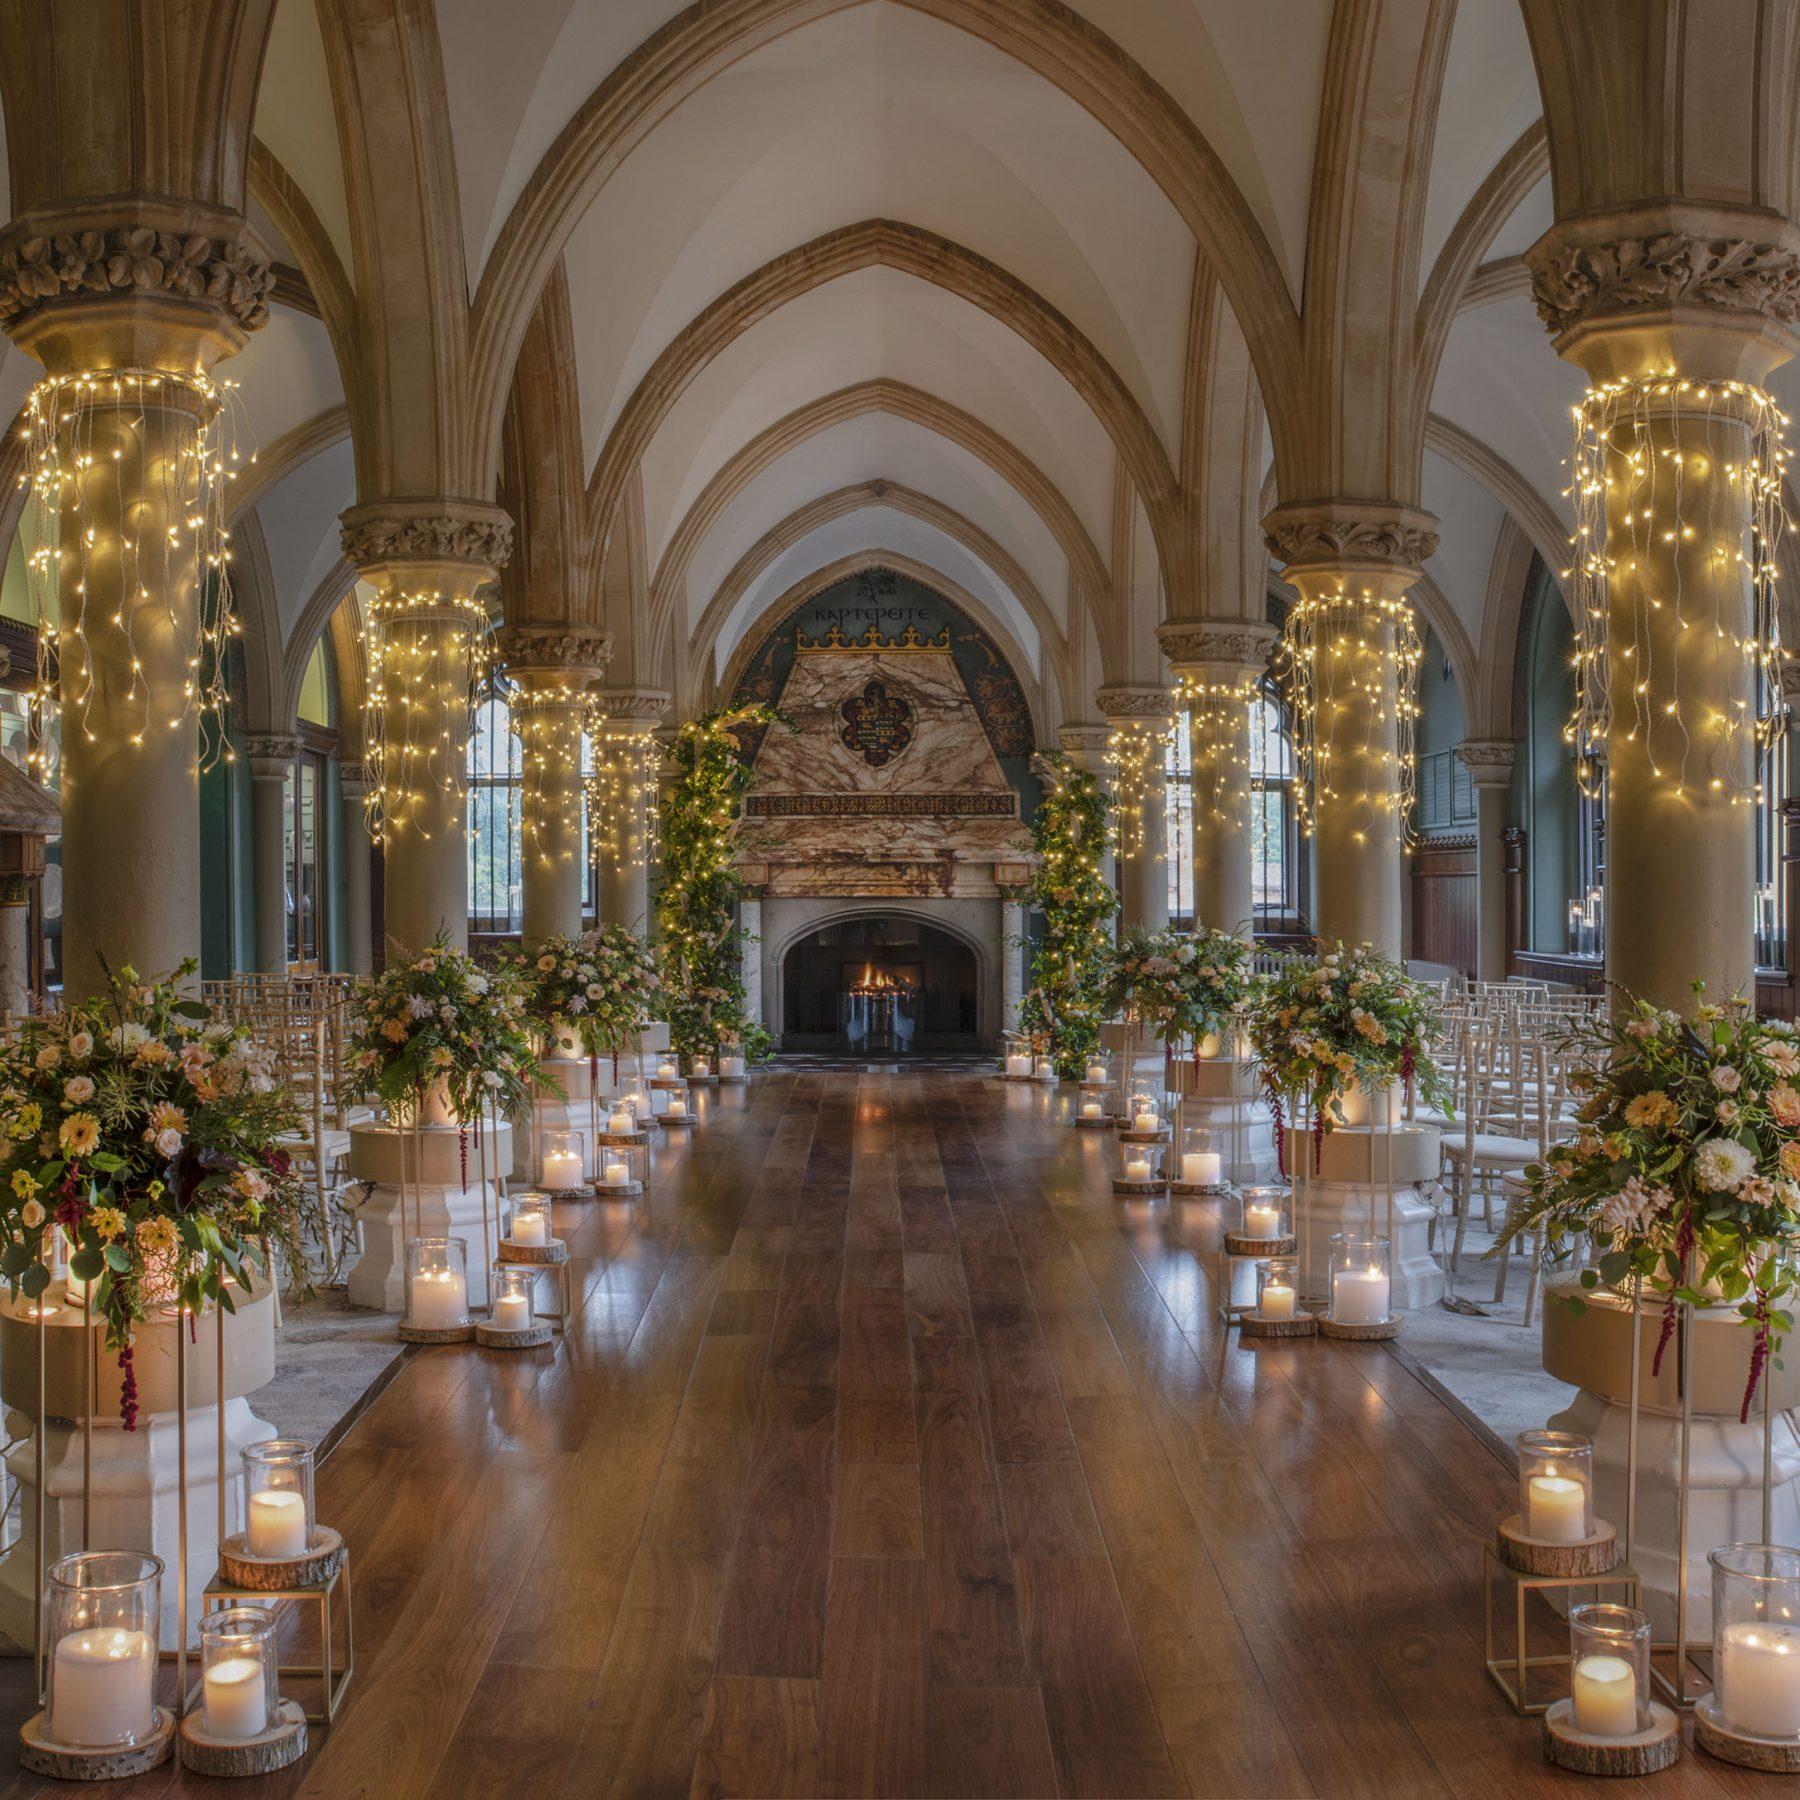 Wedding ceremony at Wotton House